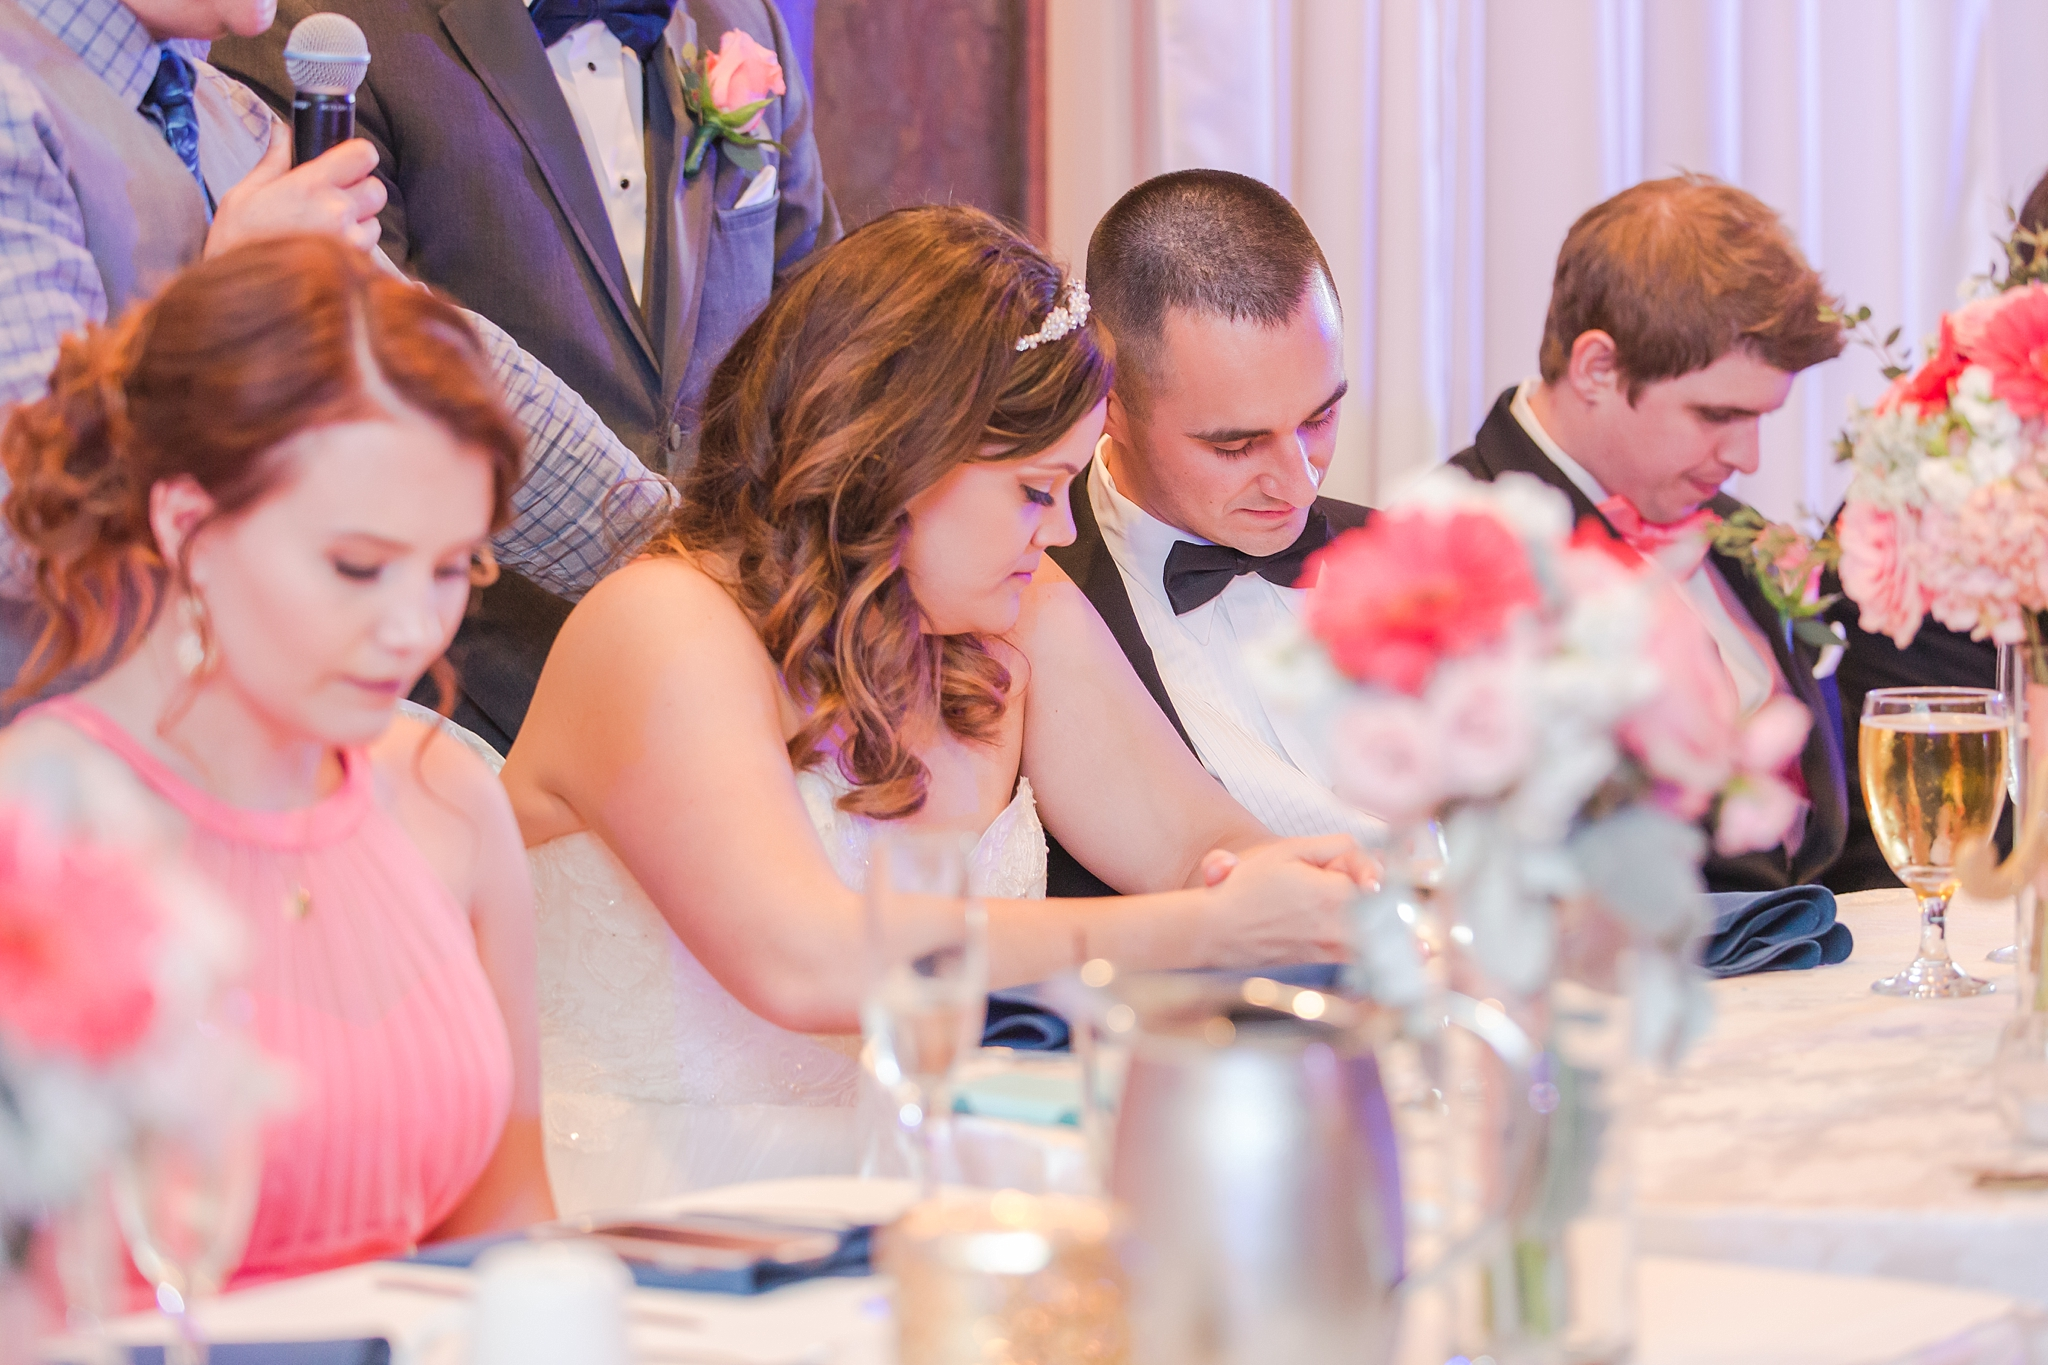 romantic-artful-candid-wedding-photos-in-st-clair-shores-at-the-white-house-wedding-chapel-by-courtney-carolyn-photography_0073.jpg